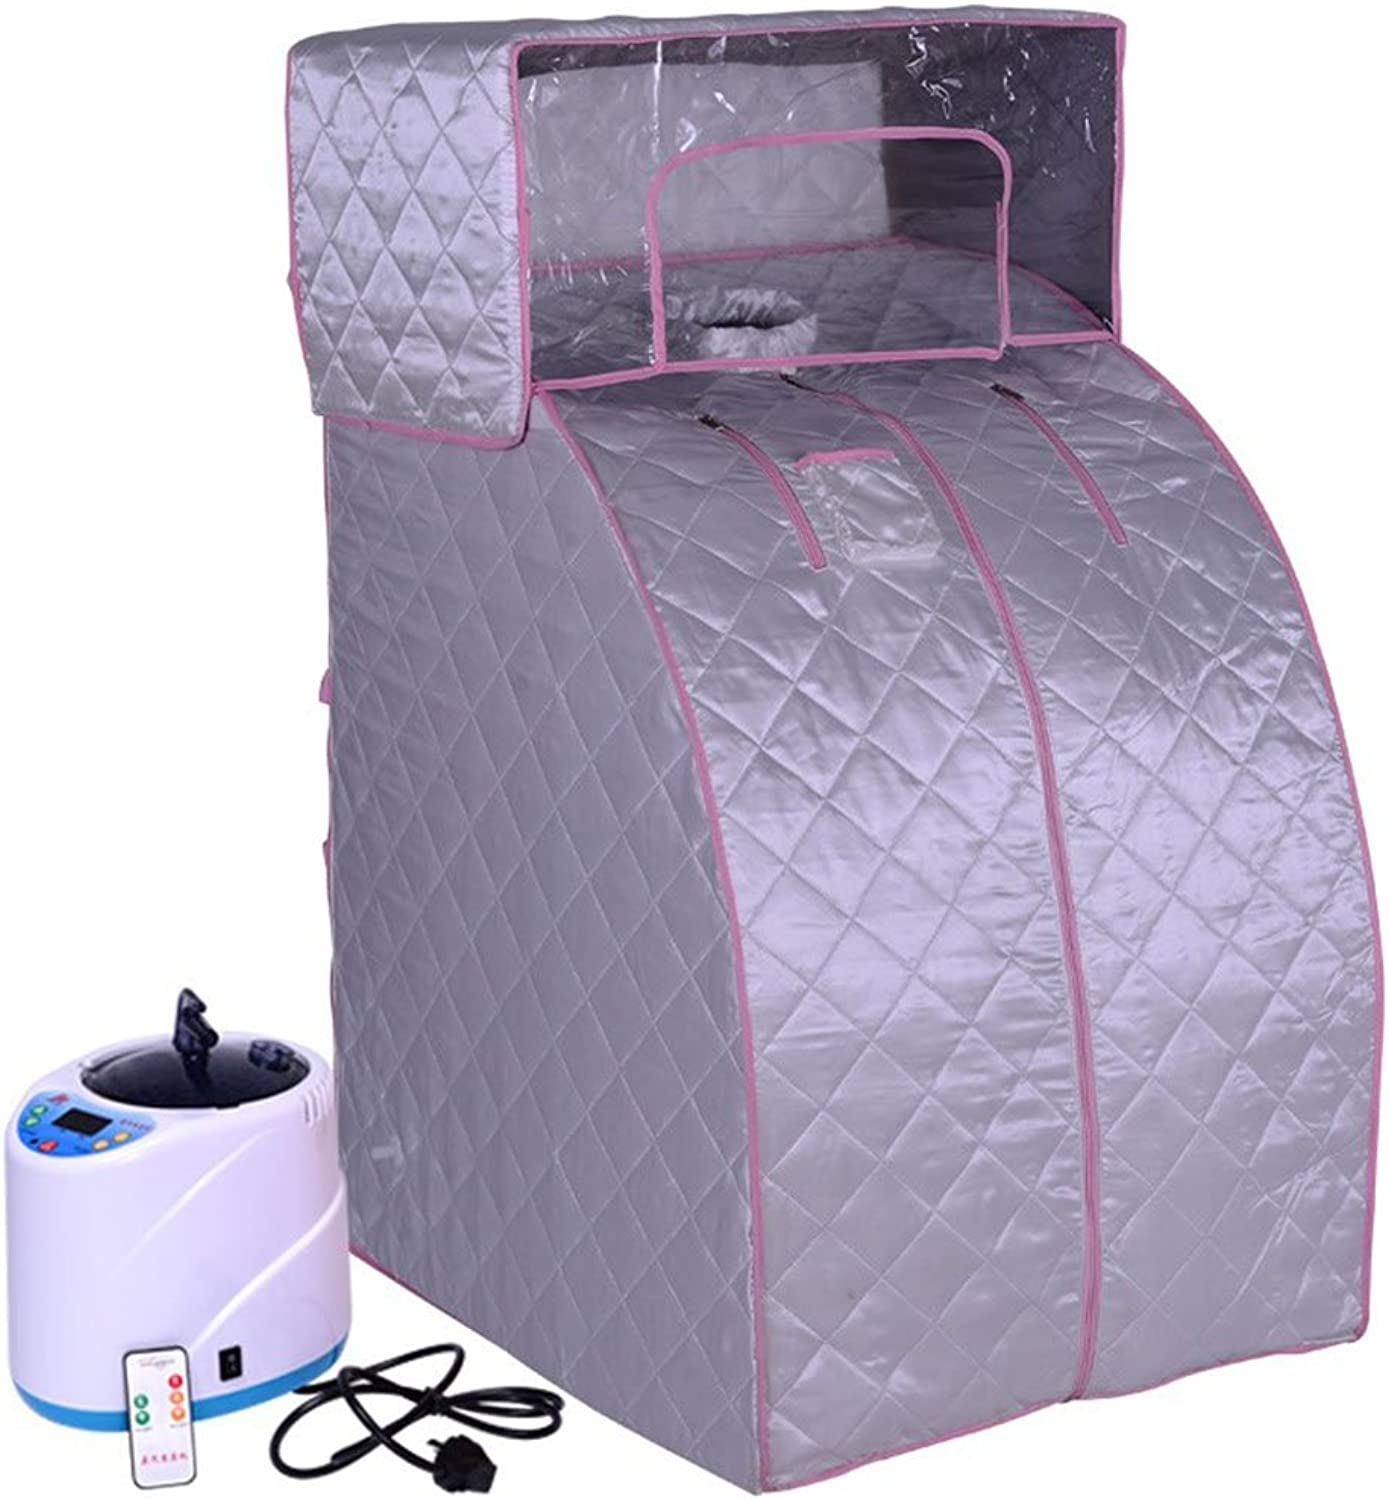 &Detoxification Portable Therapeutic Slimming Steam Sauna Spa Detox-Weight Loss lose weight ( color   Silver )